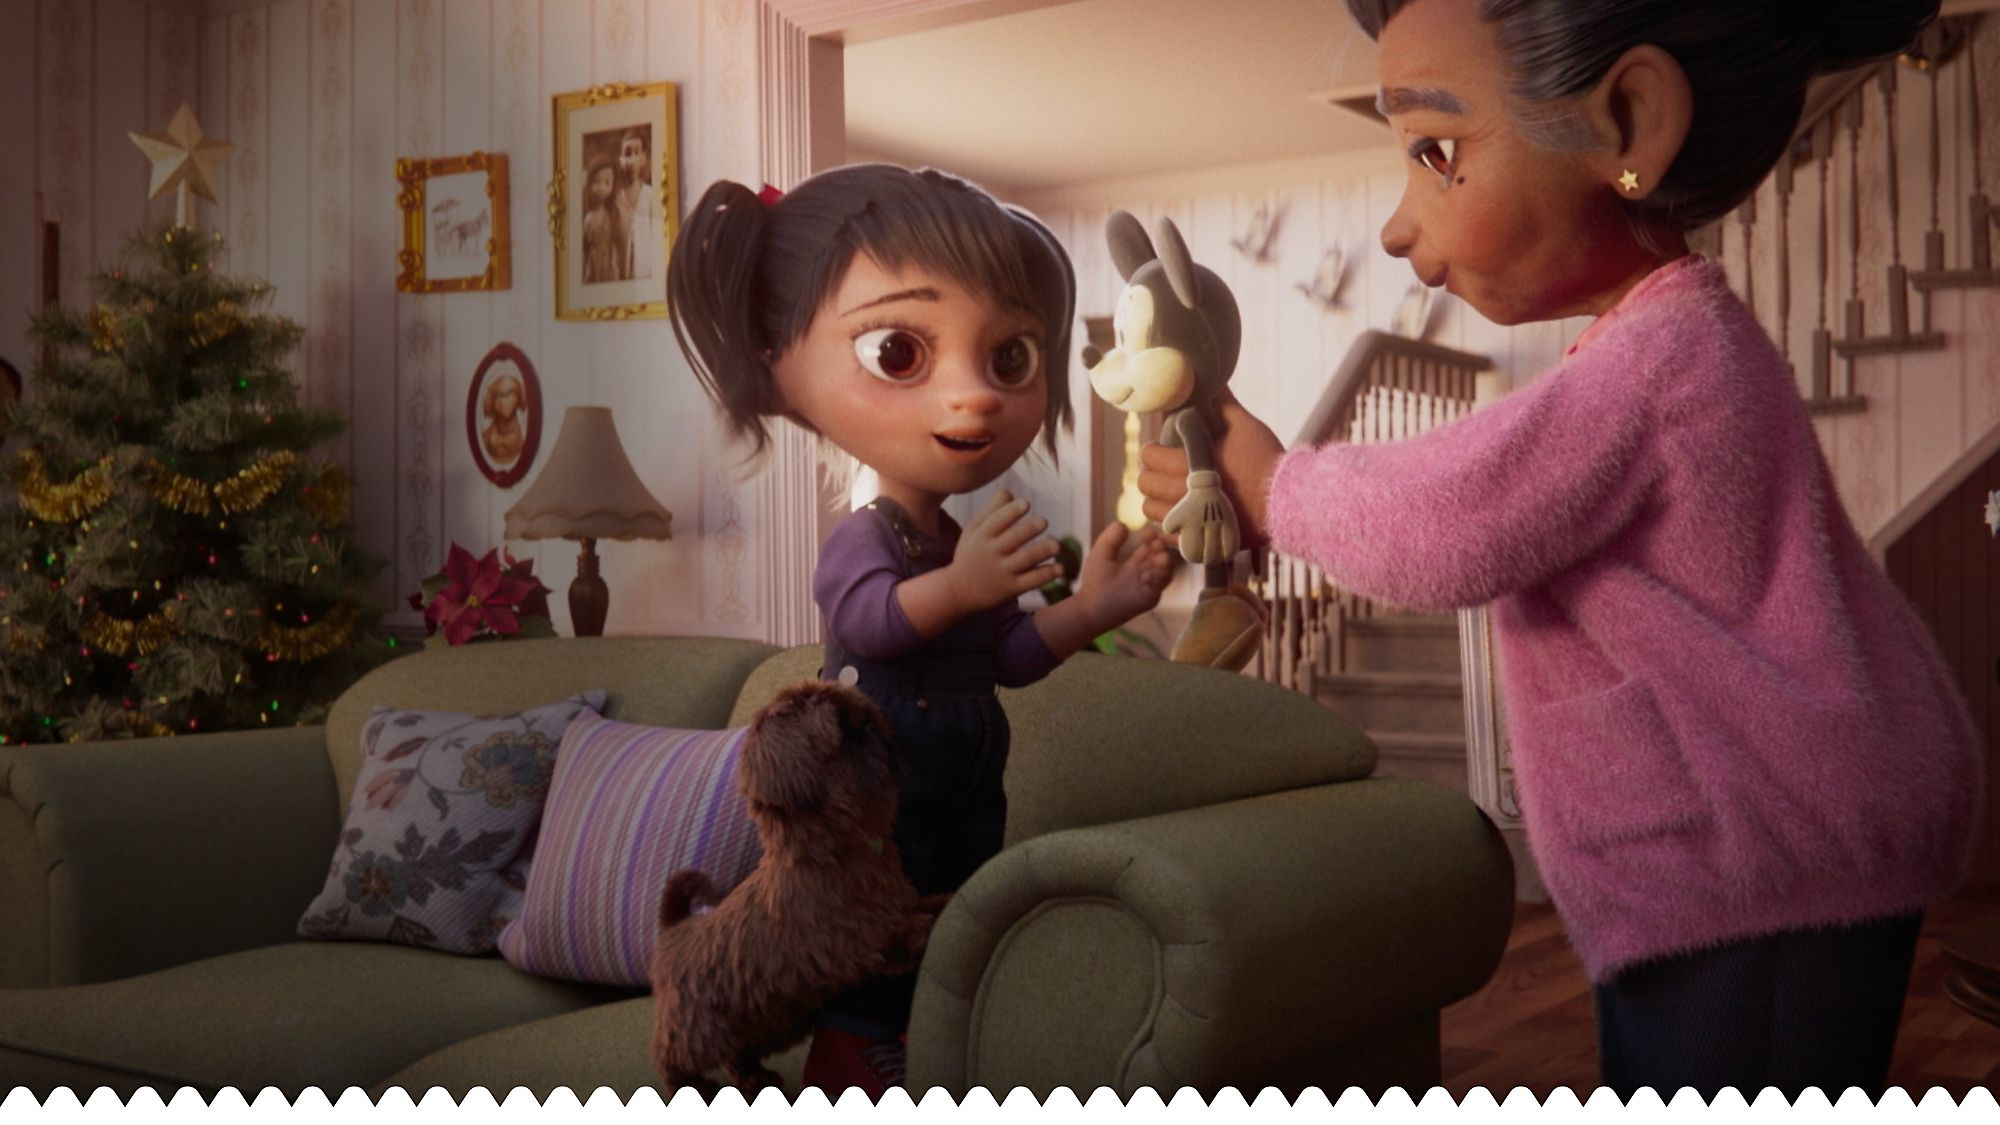 From Our Family To Yours Disney's heart-warming new Christmas advert